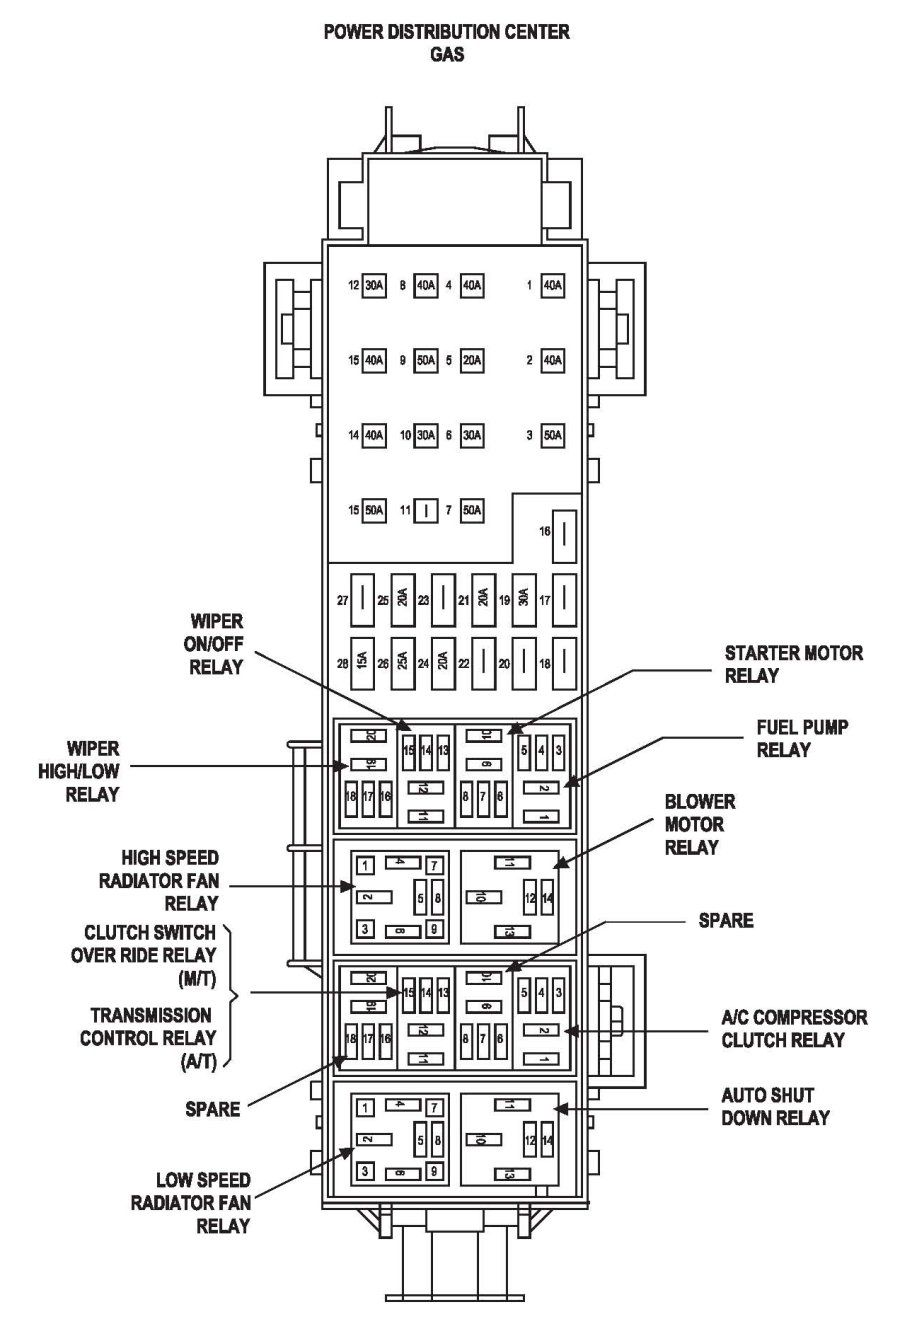 hight resolution of jeep liberty fuse box diagram image details jeep liberty 94 jeep grand cherokee fuse box diagram jeep fuse diagram